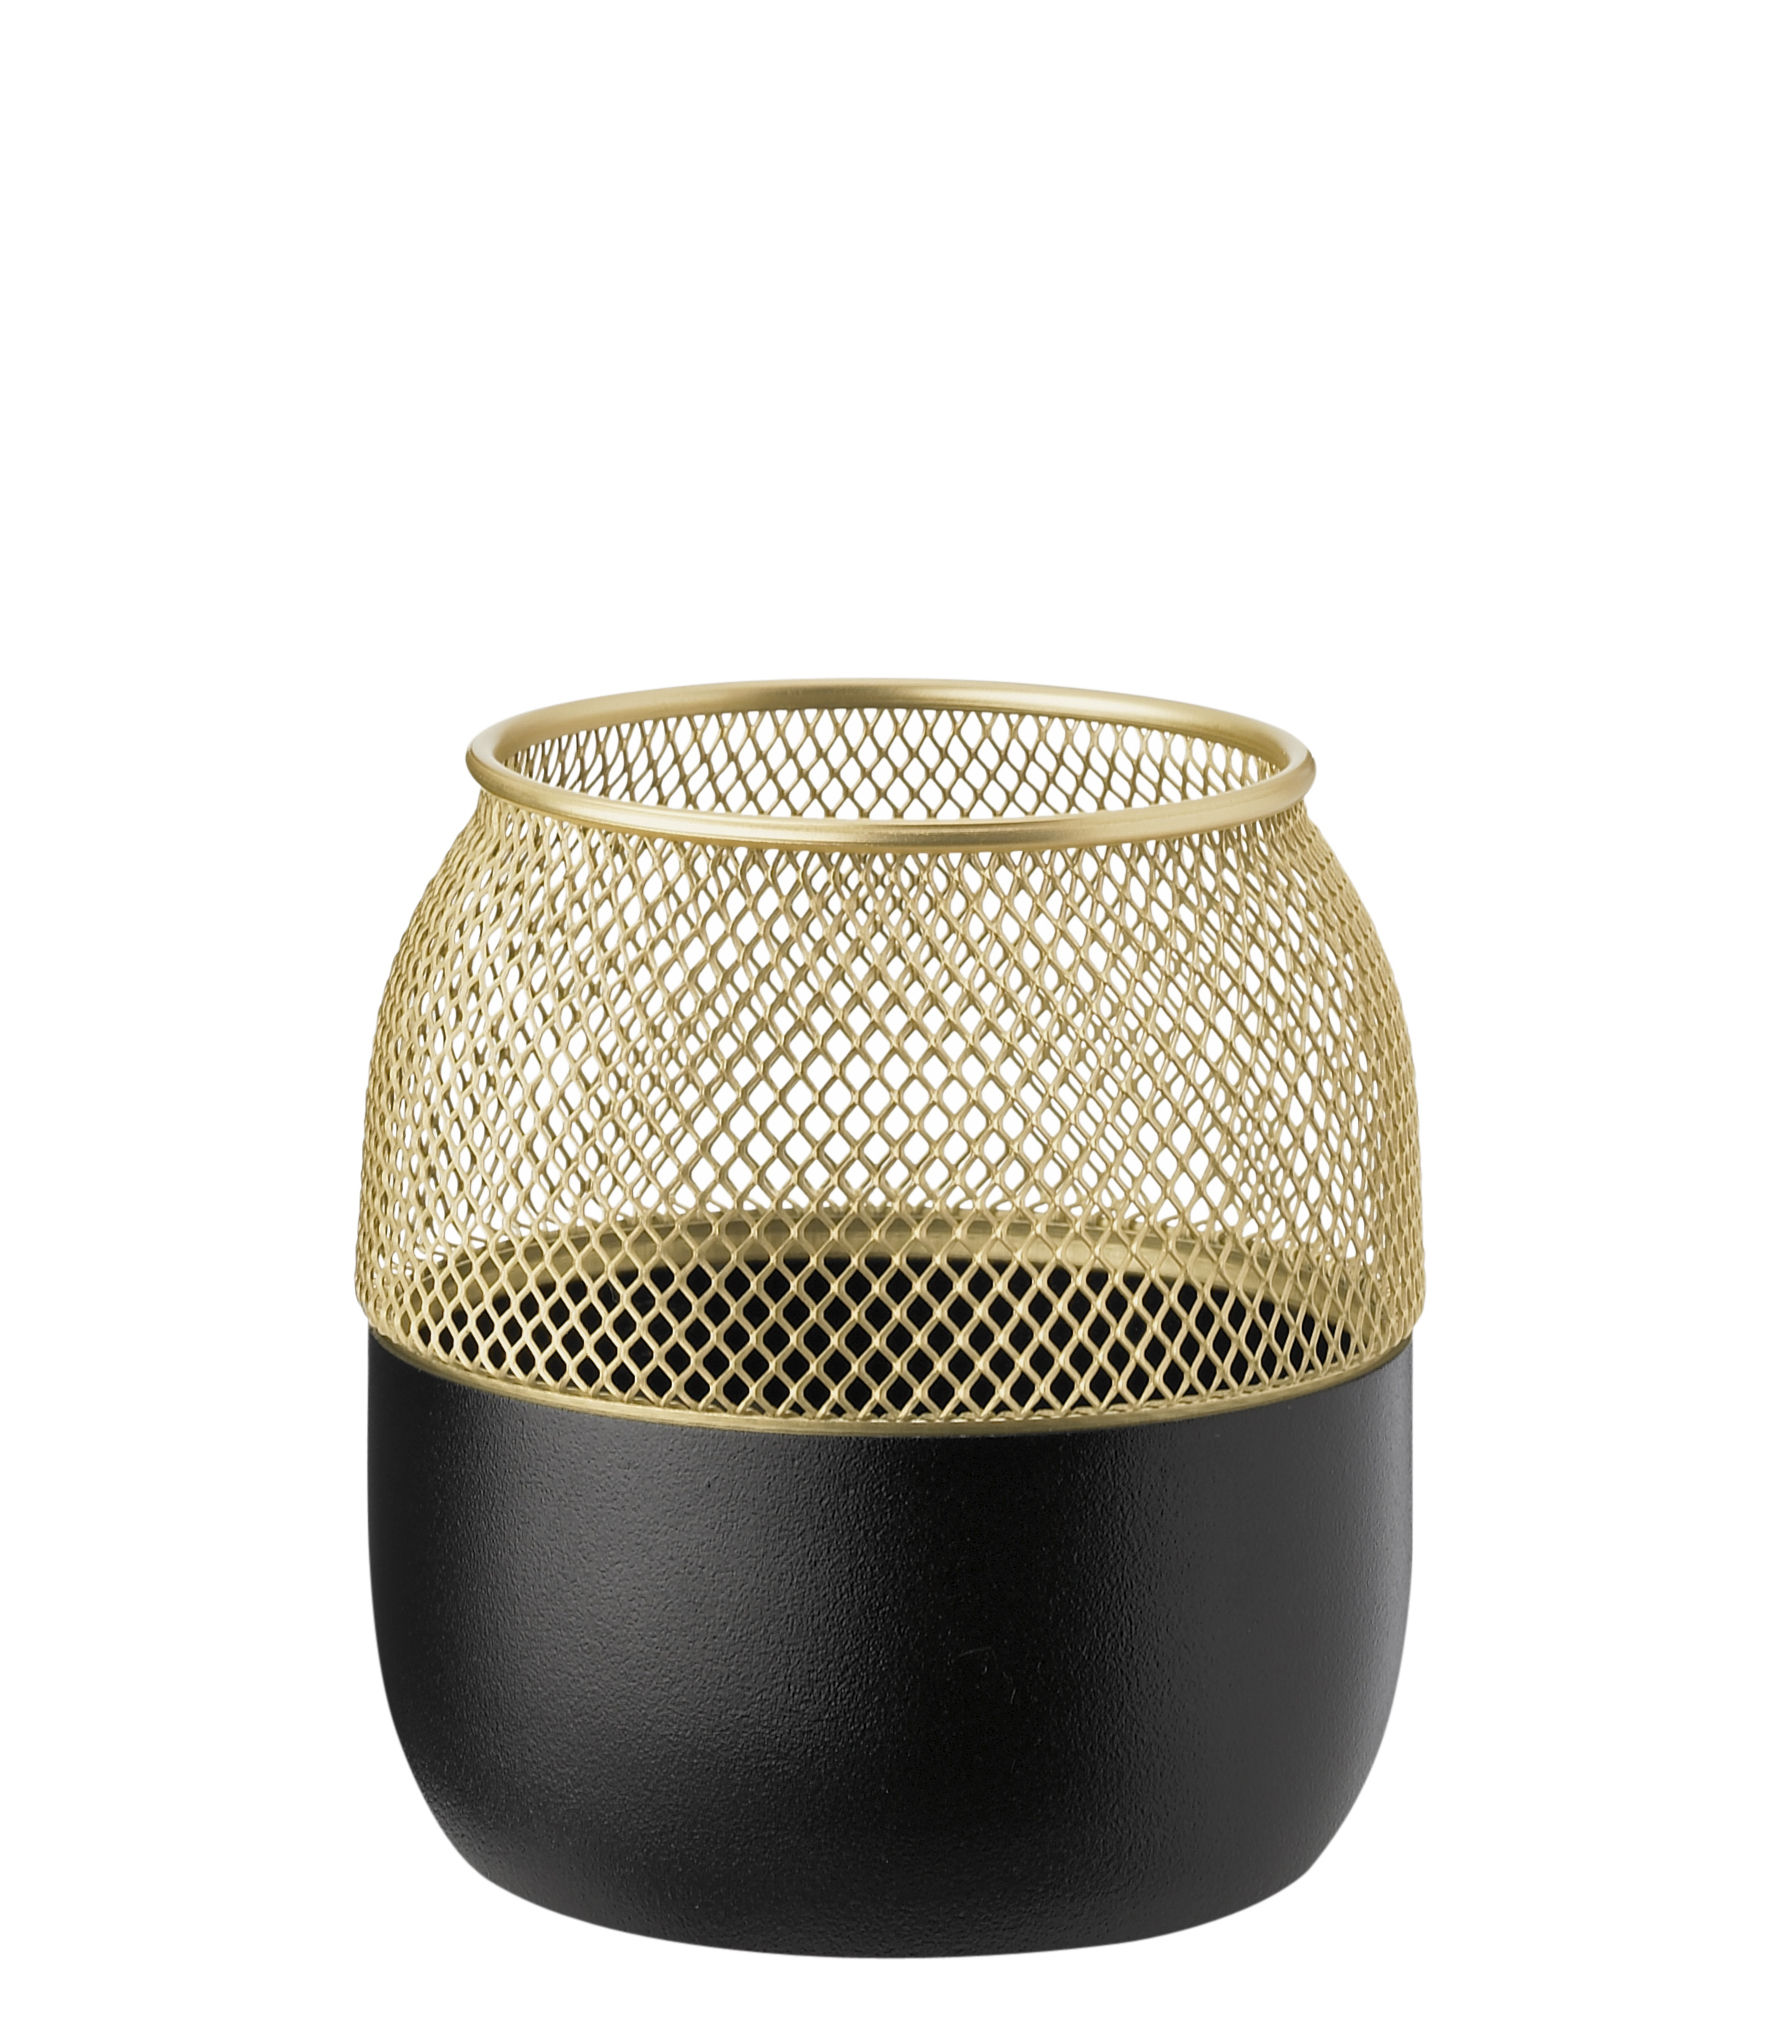 Decoration - Candles & Candle Holders - Collar Candle holder - / Small by Stelton - Small / Matt black & Brass - Brass-coated stainless steel, Teflon®-coated stainless steel